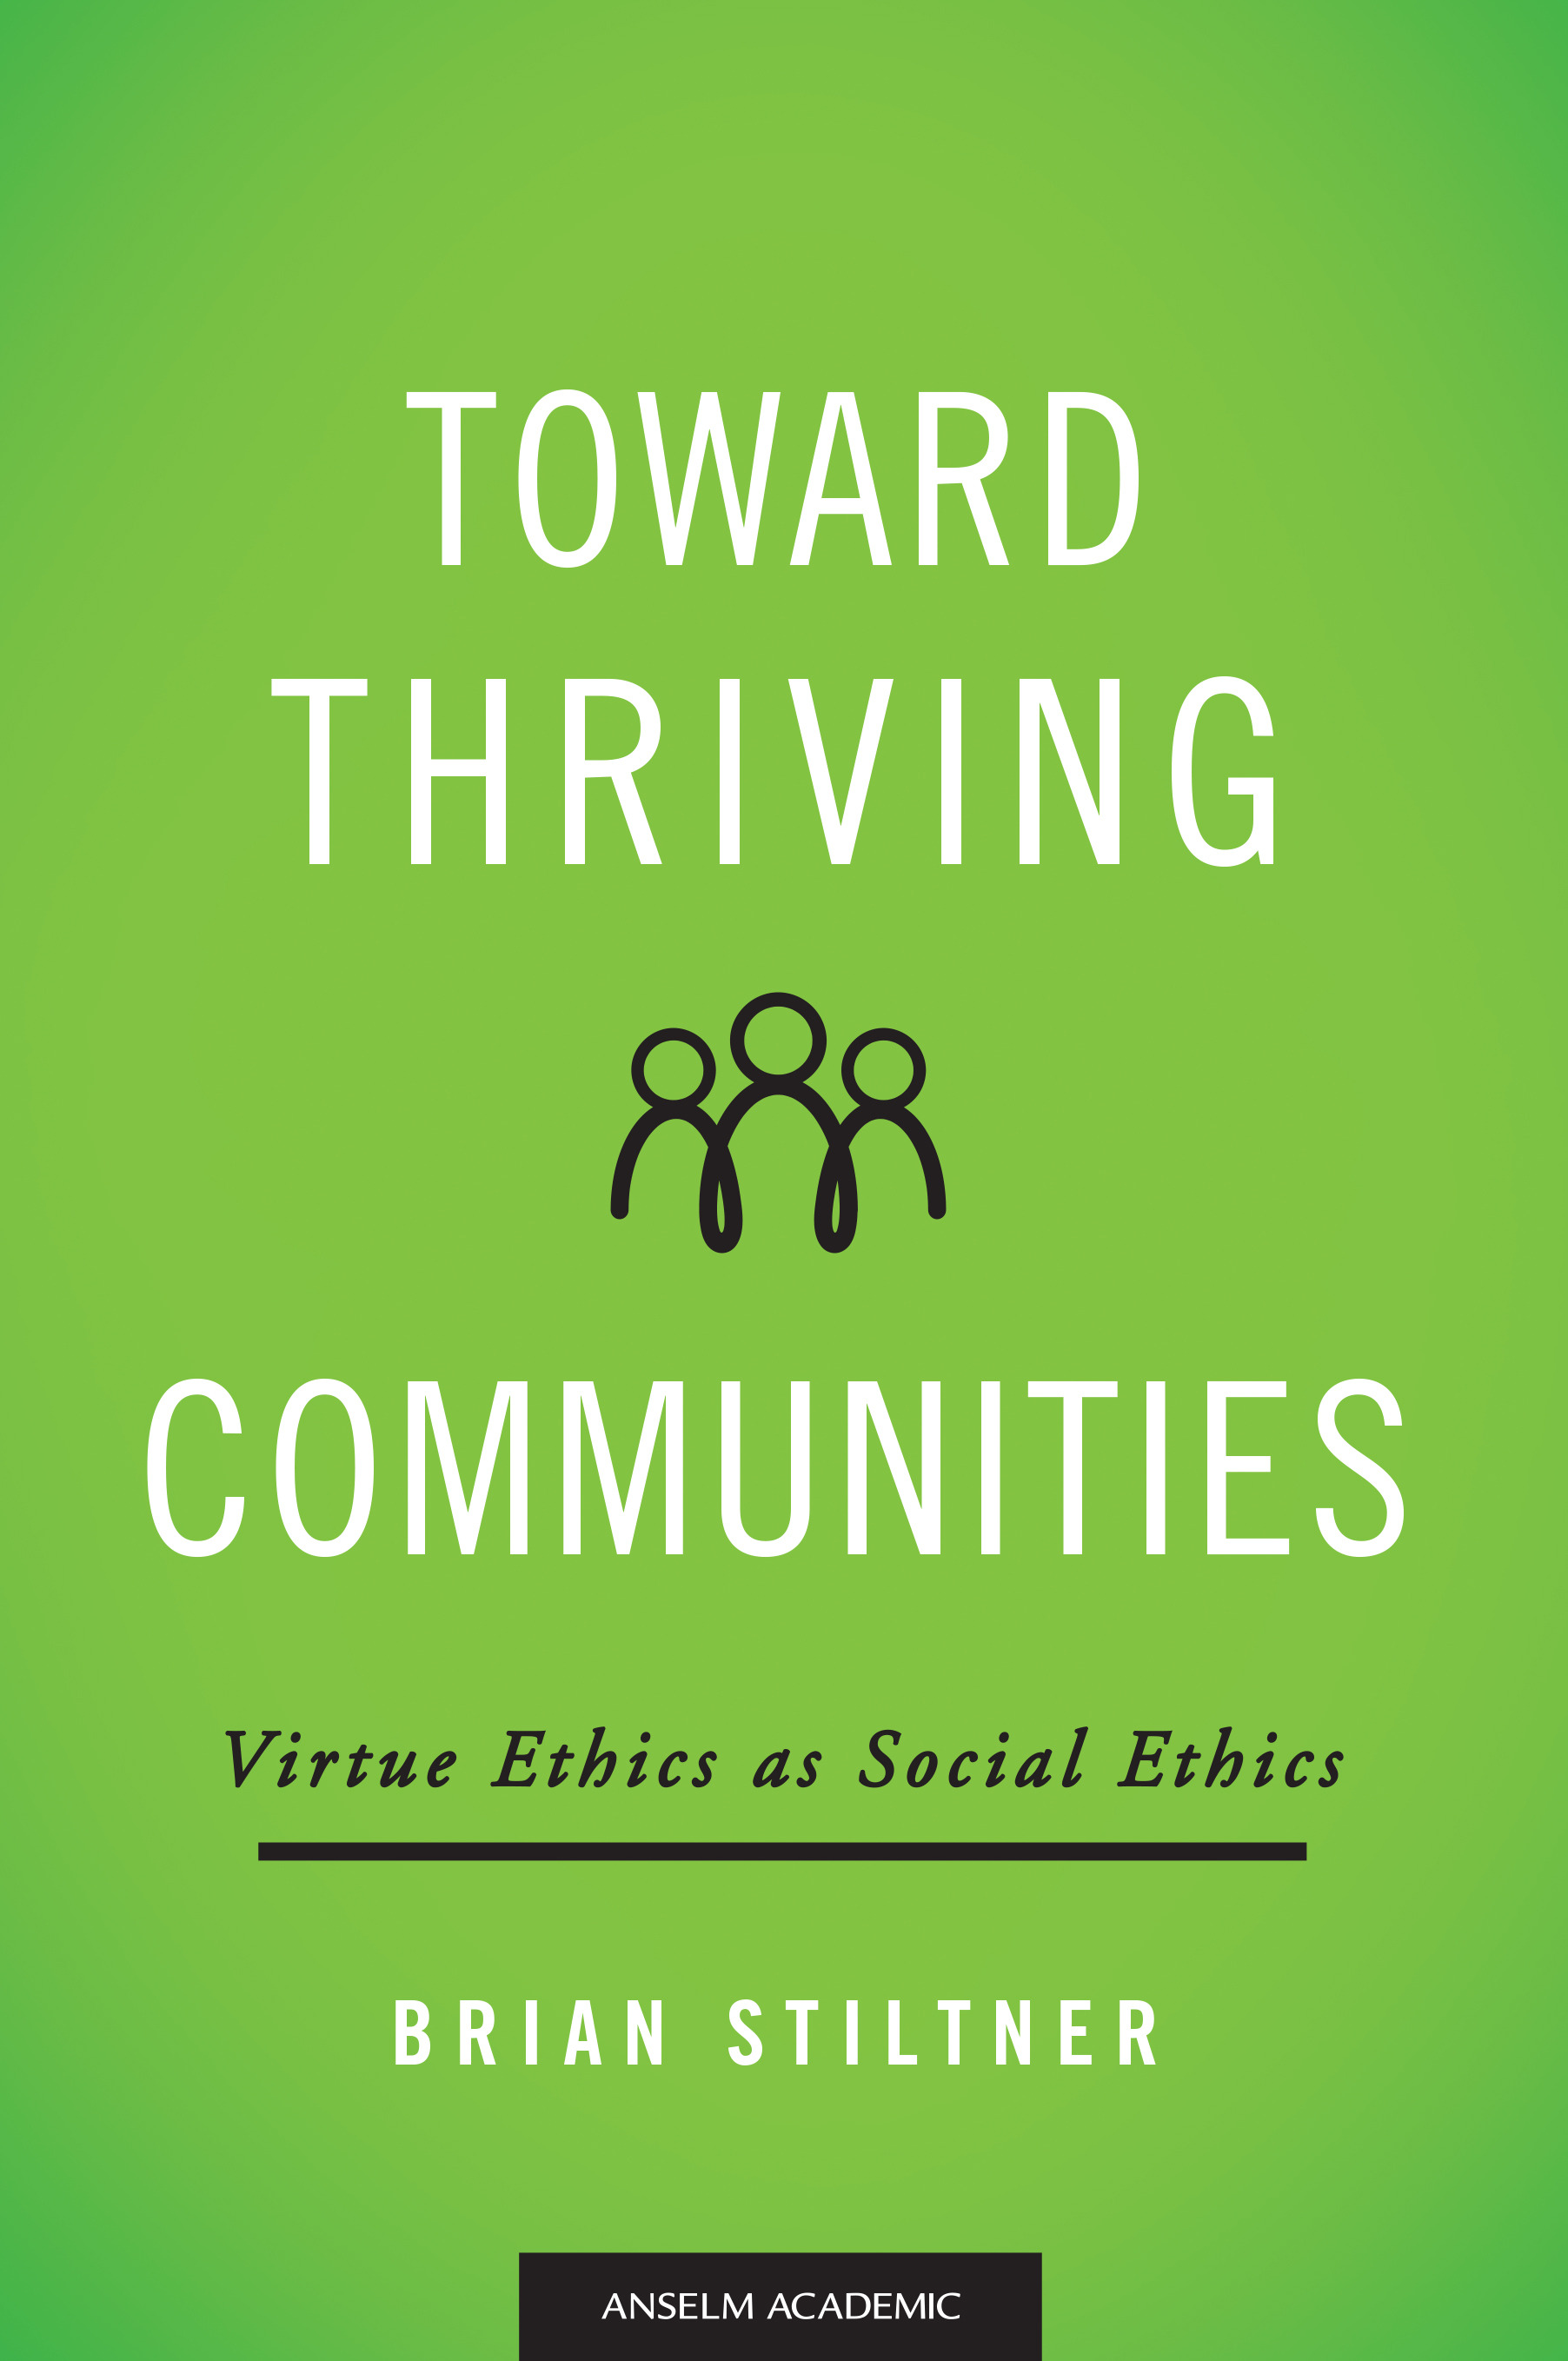 Toward Thriving Communities: Virtue Ethics as Social Ethics - PDF